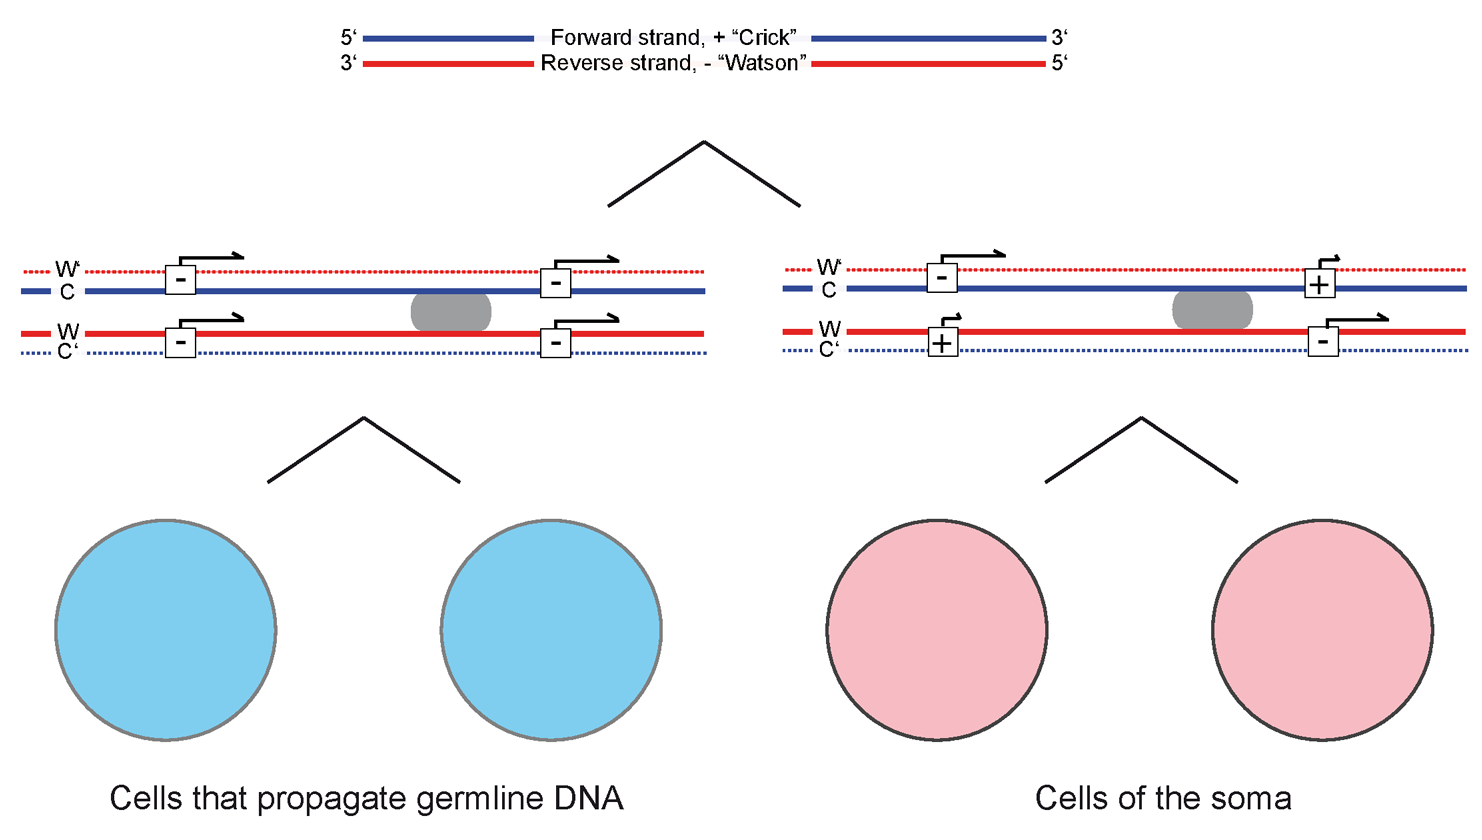 "Model for how G4 structures in DNA could generate different gene expression patterns in cells according to the ""silent sister"" hypothesis. DNA typically consists of two strands, a ""Watson"" and a ""Crick strand (top). Cells that propagate germline DNA in ciliates, flies and flatworms were shown to stain weakly with antibodies to G4 structures (bottom) in the paper by Hoffmann et al. Based on this observation it seems possible that the formation of G4 structures during DNA transactions such as replication and transcription is suppressed in cells of the germline compared to somatic cells. If G4 structures are not rapidly resolved during replication these structures could delay the deposition of epigenetic marks from the parental chromatid or could serve to recruit new epigenetic marks. The resulting epigenetic differences between sister chromatids could trigger differences in gene expression between daughter cells as predicted by the silent sister hypothesis. The role of DNA methylation in this context is puzzling and intriguing. On the one hand it is known that cytosine methylation stabilizes the bond between guanine and cytosine nucleotides and thereby stabilizes duplex DNA. On the other hands cytosine methylation could also stabilize G4 structures. So it may be hard to predict how the dynamic equilibrium between duplex and quadruplex DNA is shifted upon methylation of cytosines in and around a specific gene without taking information of strands and G4 motifs, next to the expression of various proteins that may bind and resolve G4 structures into account. Of note: G4 motifs were shown to be not randomly distributed in the genome. Their specific enrichment of G4 motifs at genes that promote growth is in line with the proposed role in differentiation."